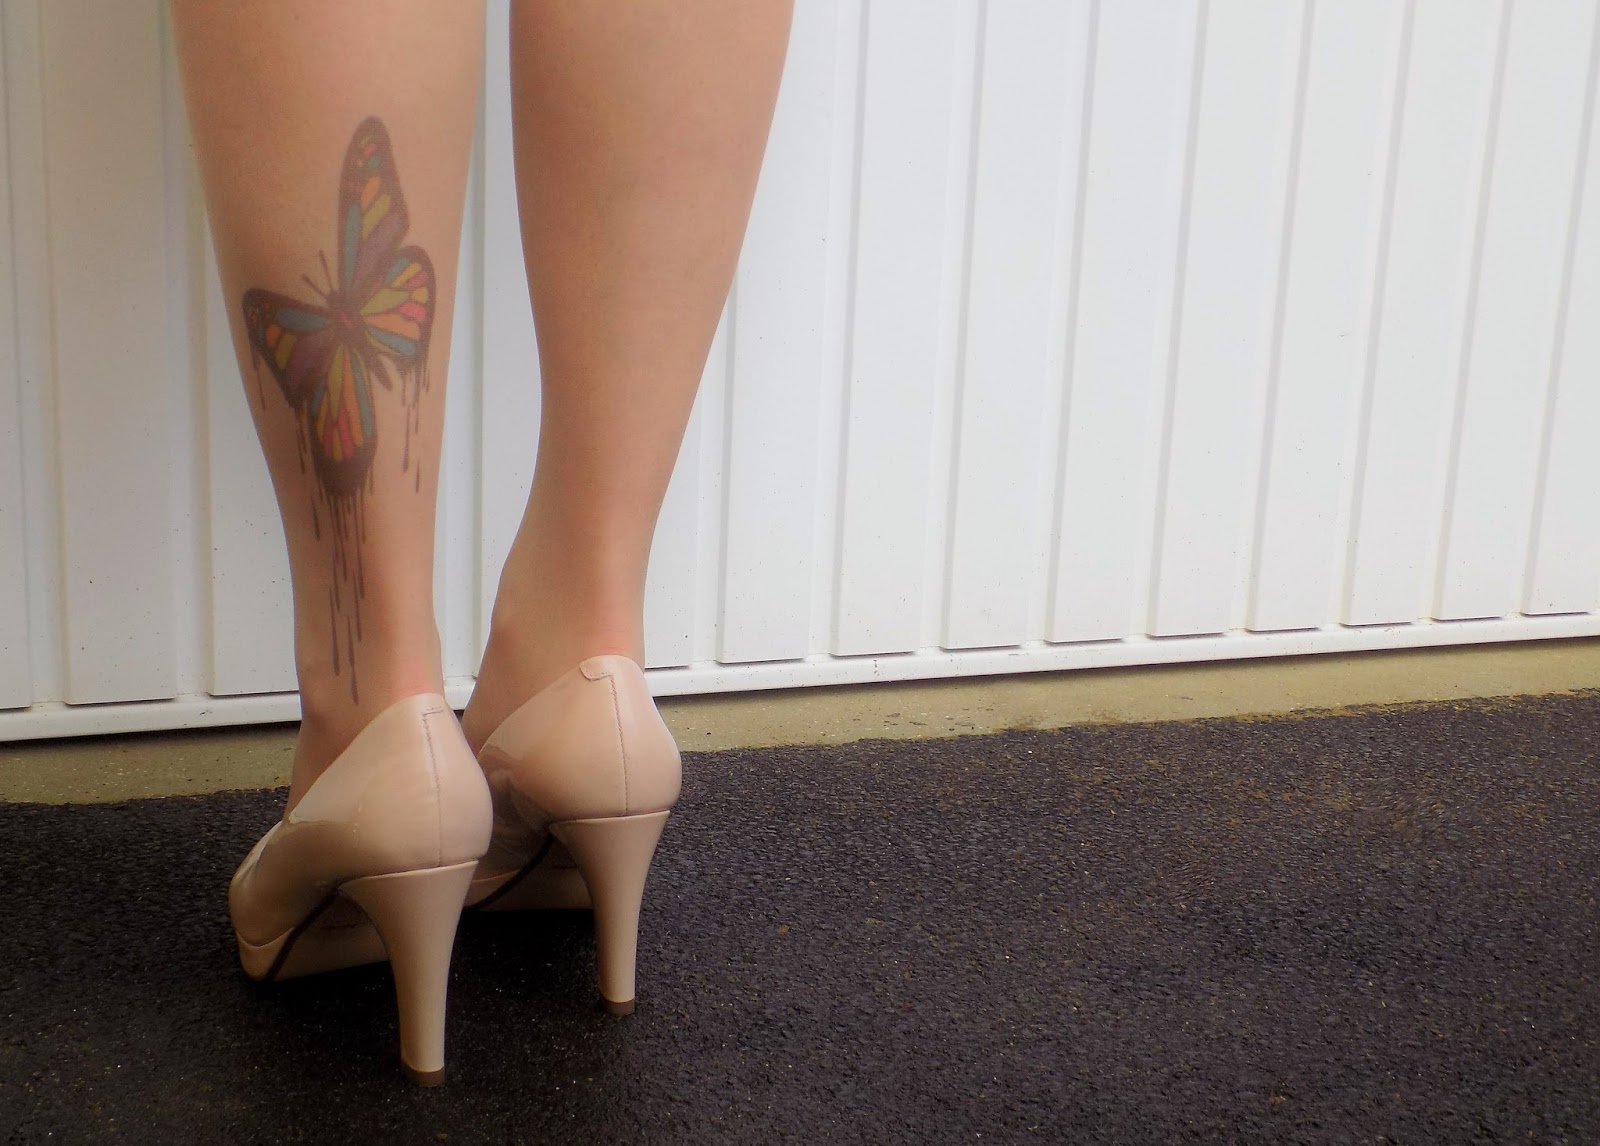 Butterfly tattoo tights and nude shoes